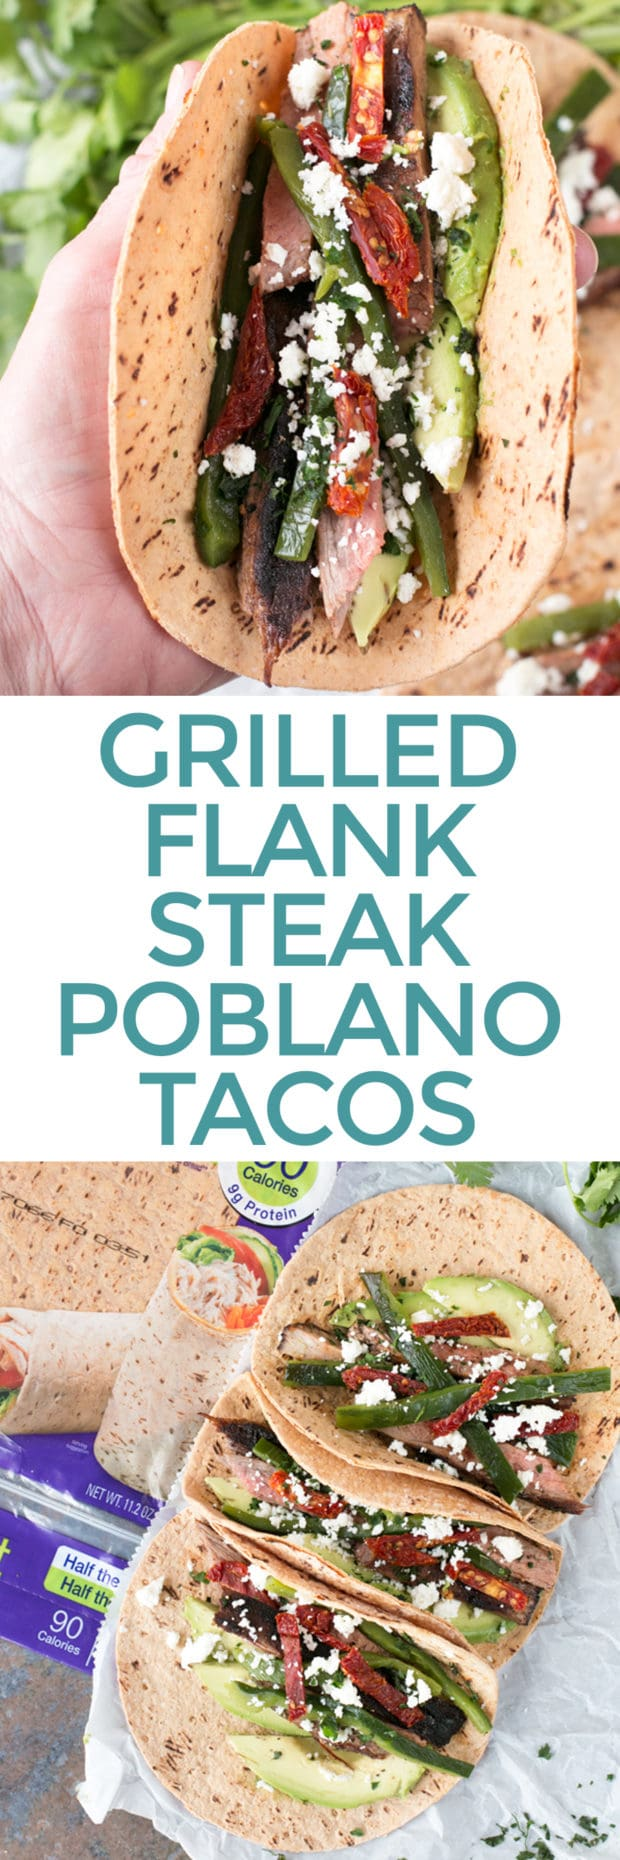 Grilled Flank Steak Poblano Tacos Cake N Knife